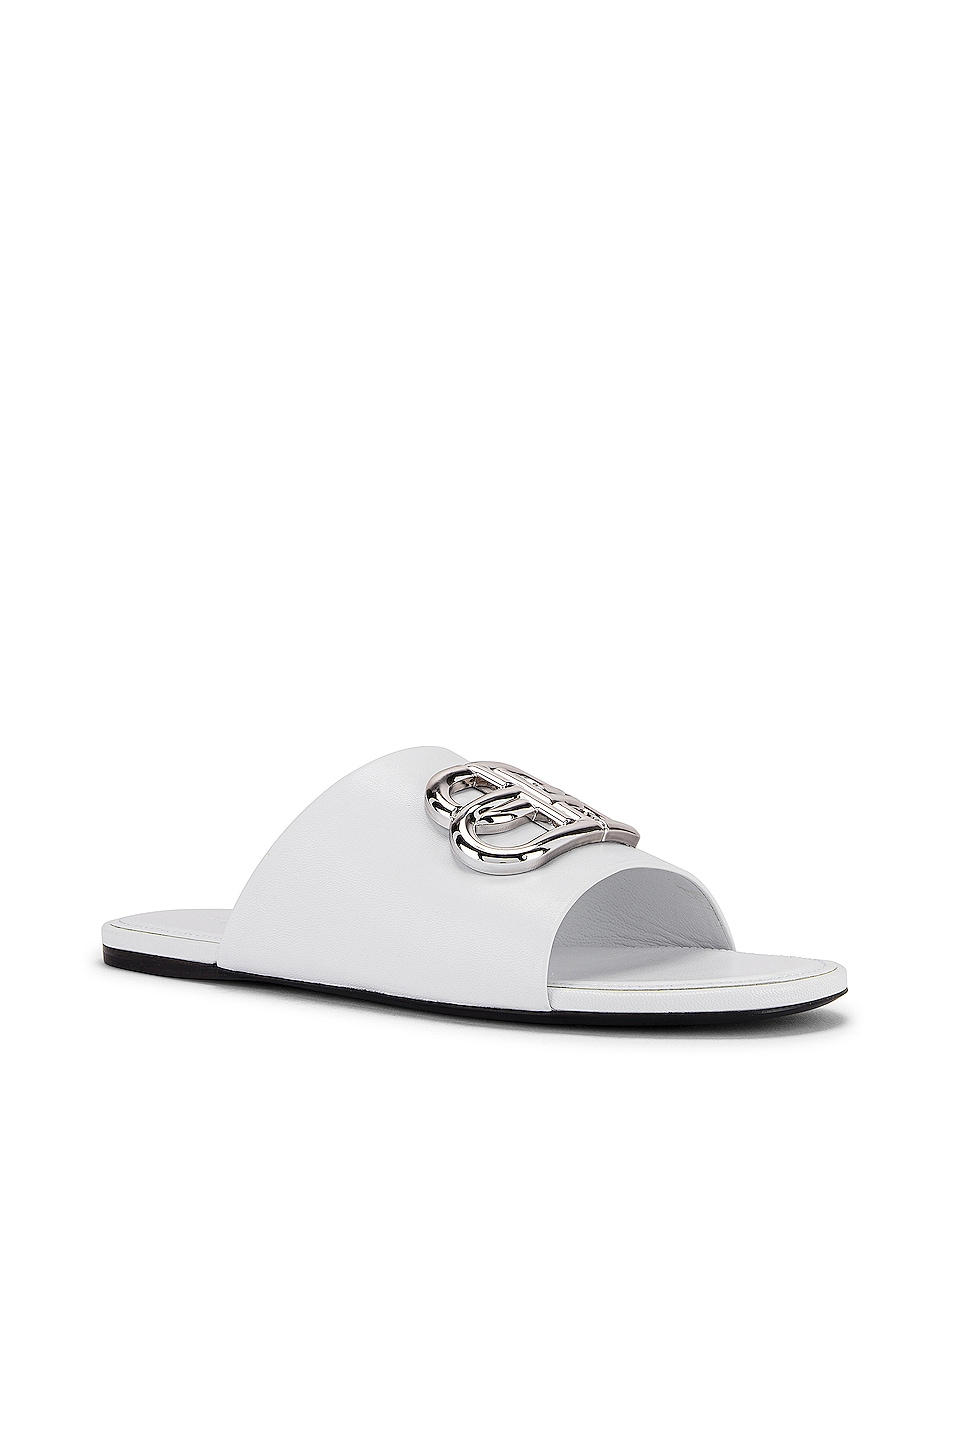 Image 3 of Balenciaga Oval BB Slides in White & Silver